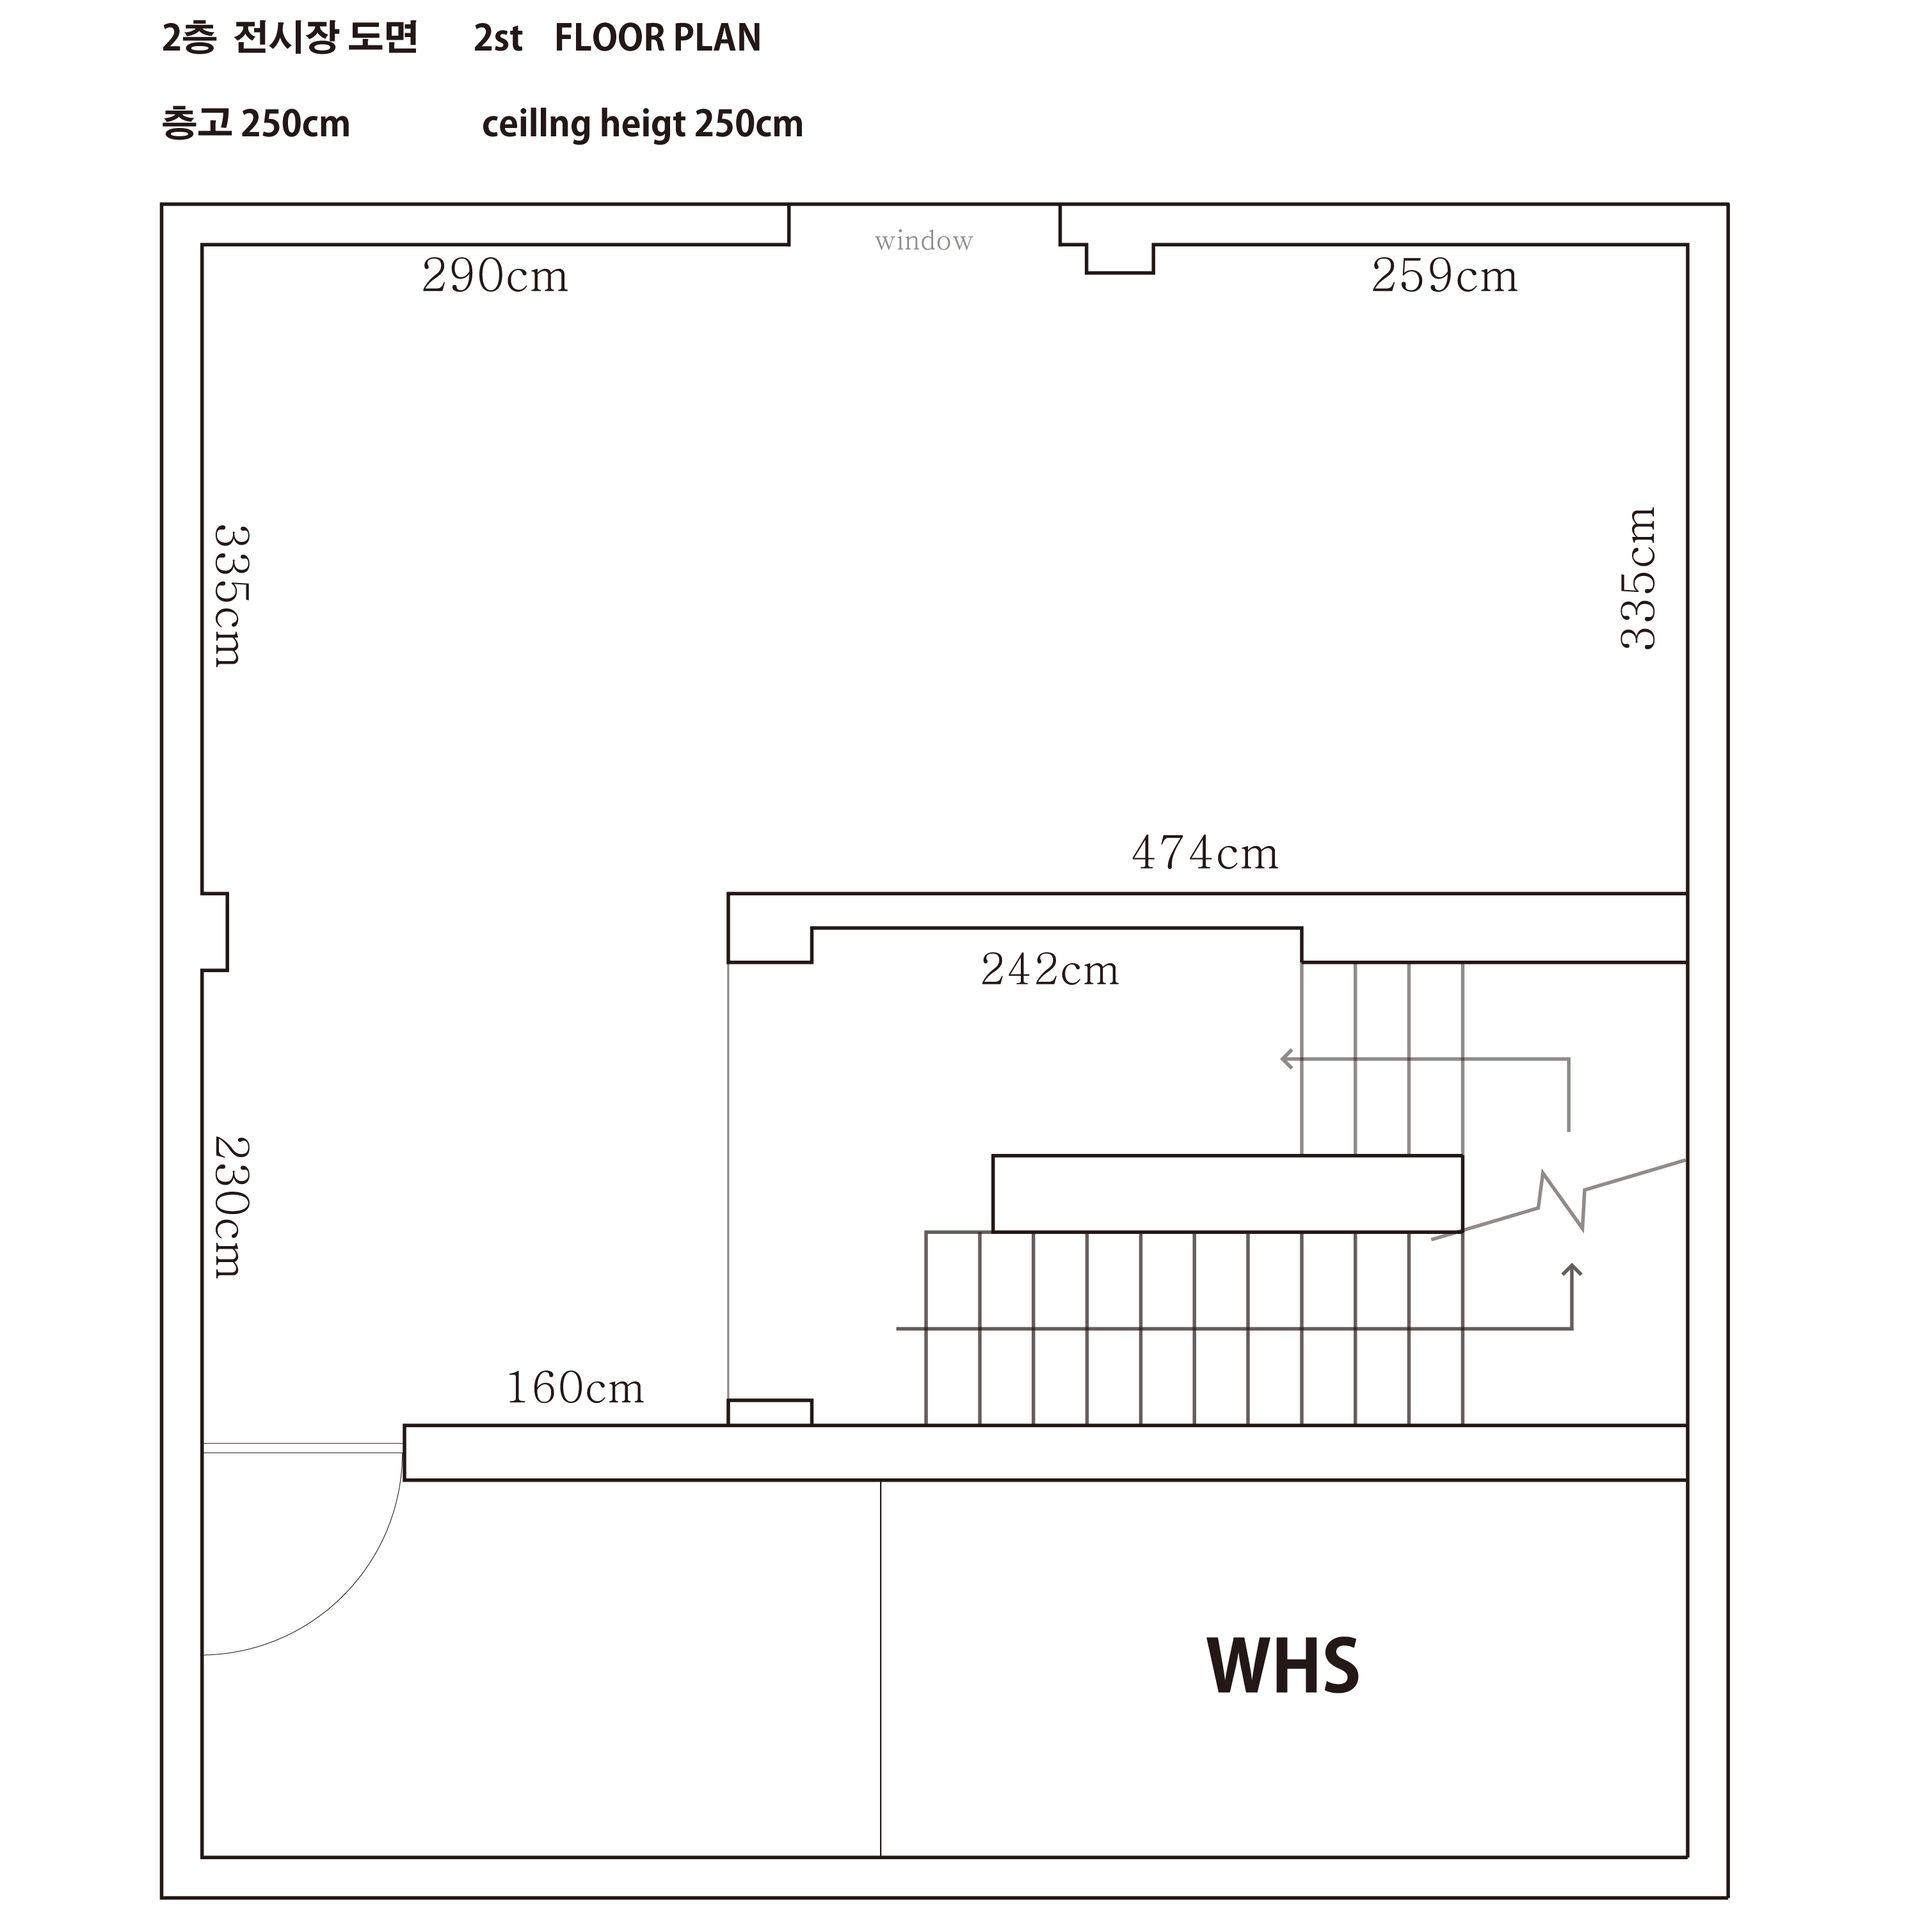 2층 도면 , 2st Floor plan